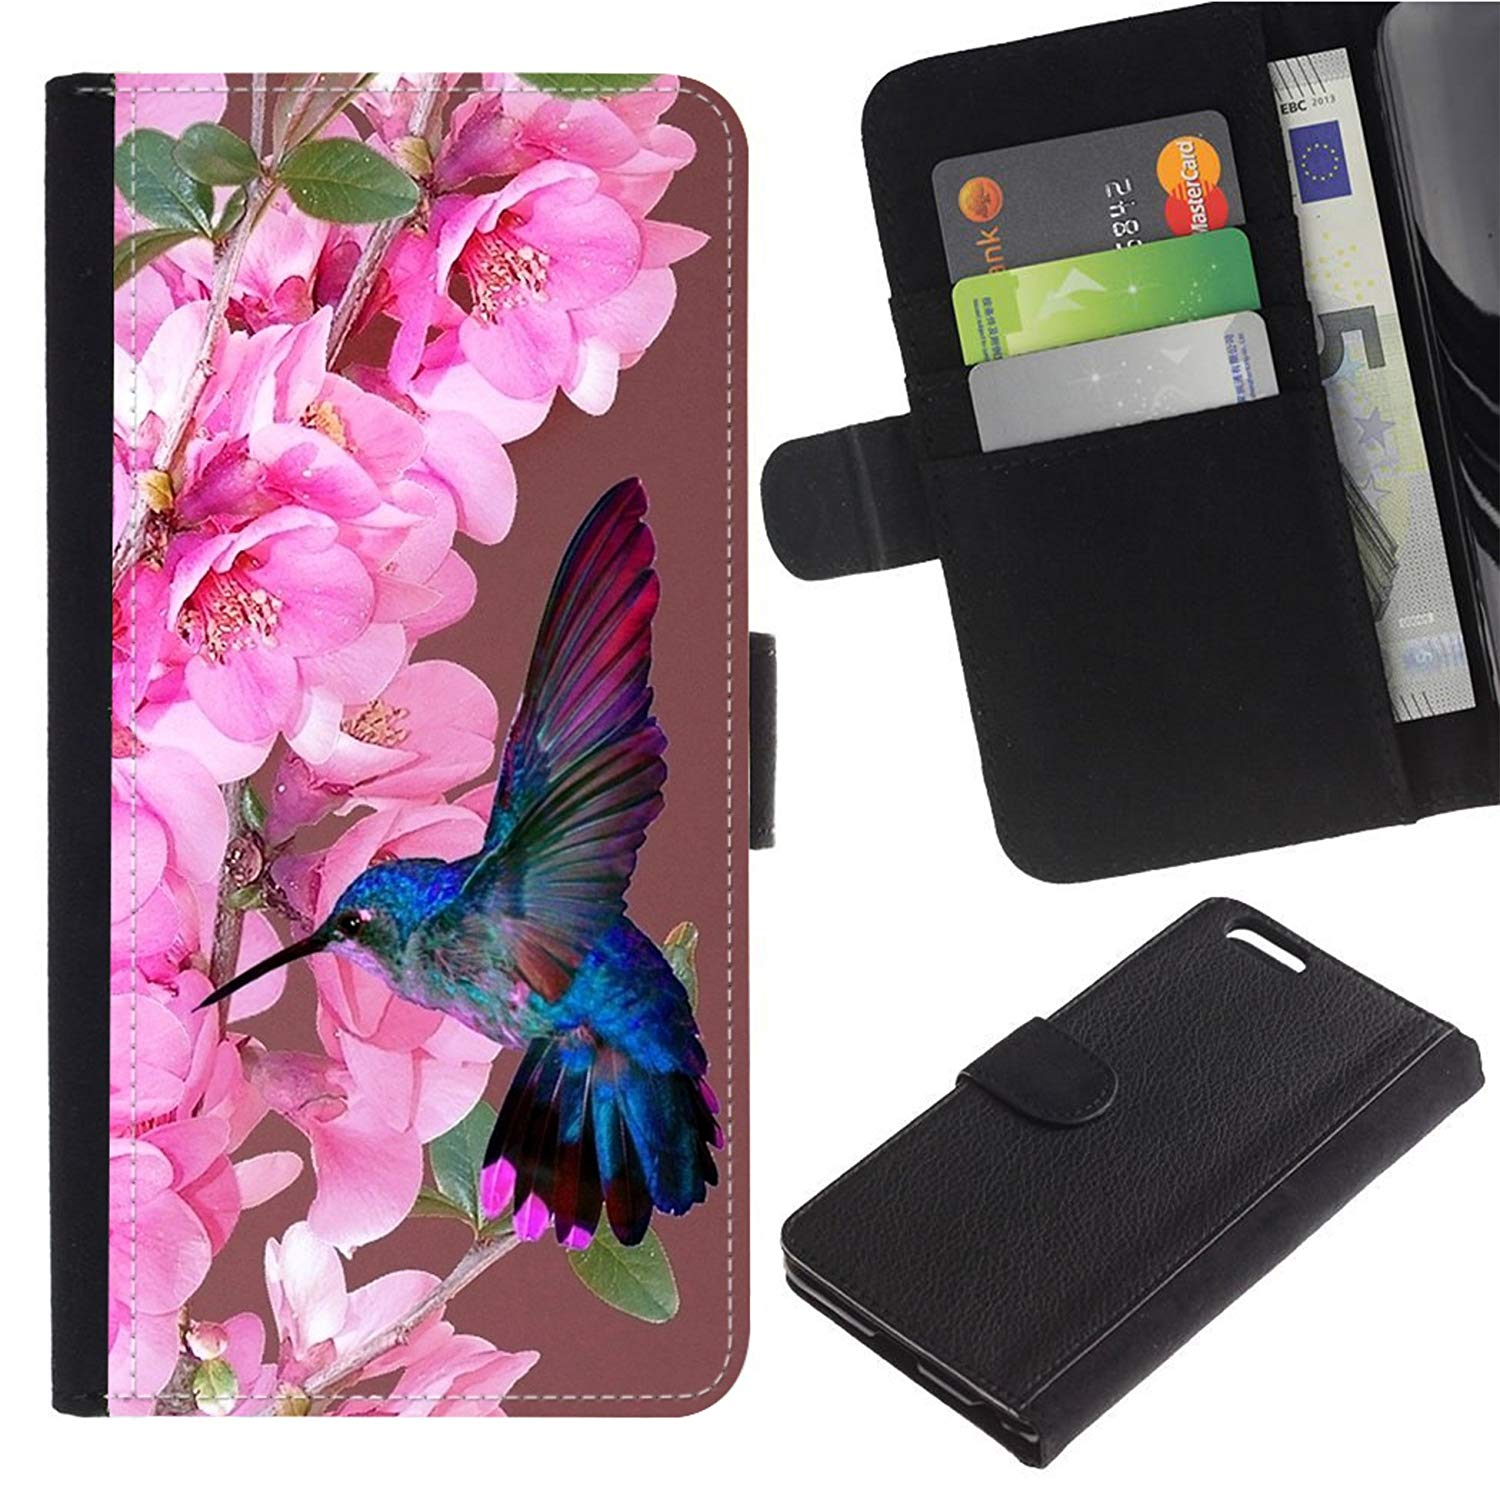 [Hummingbirds And White Pink Orchid Purple] For LG G4/H815 H812 H810 H811 S991 VS986 US991 Flip Leather Wallet Holsters Pouch Skin Case